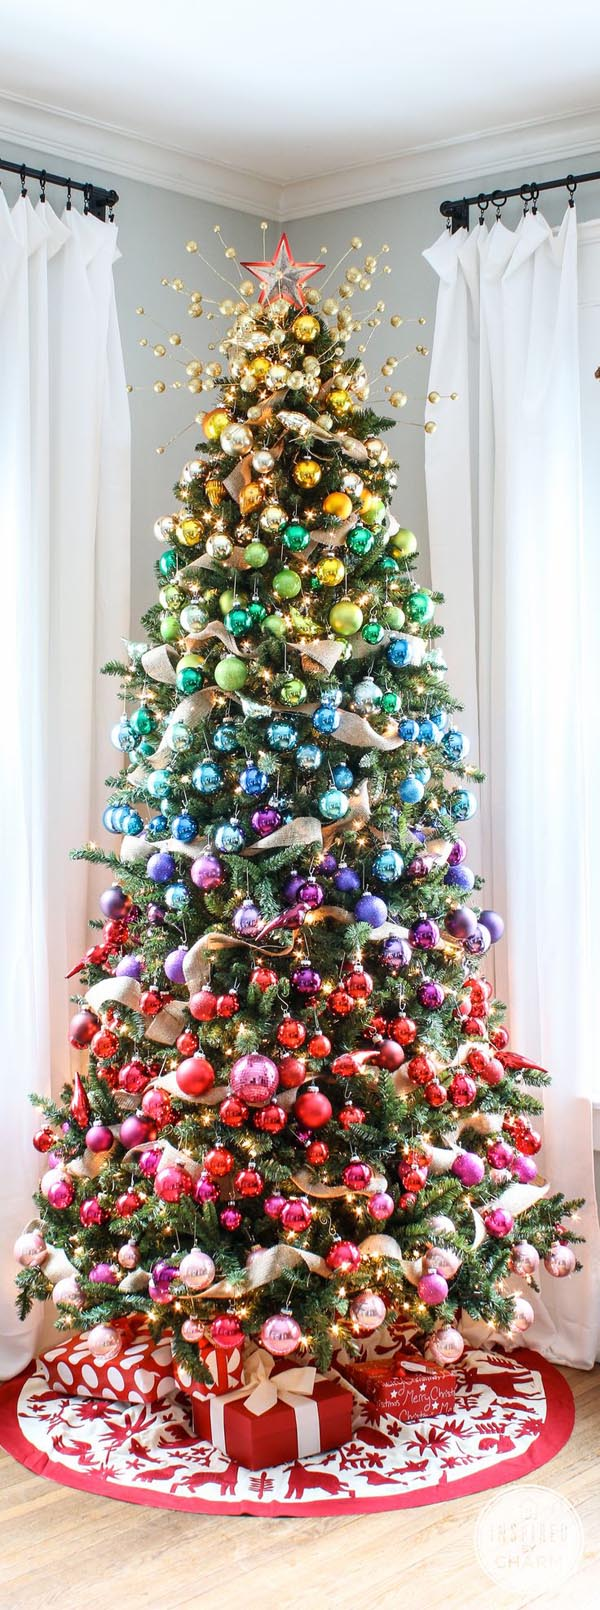 Rainbow Tree...these are the most Creative Christmas Trees